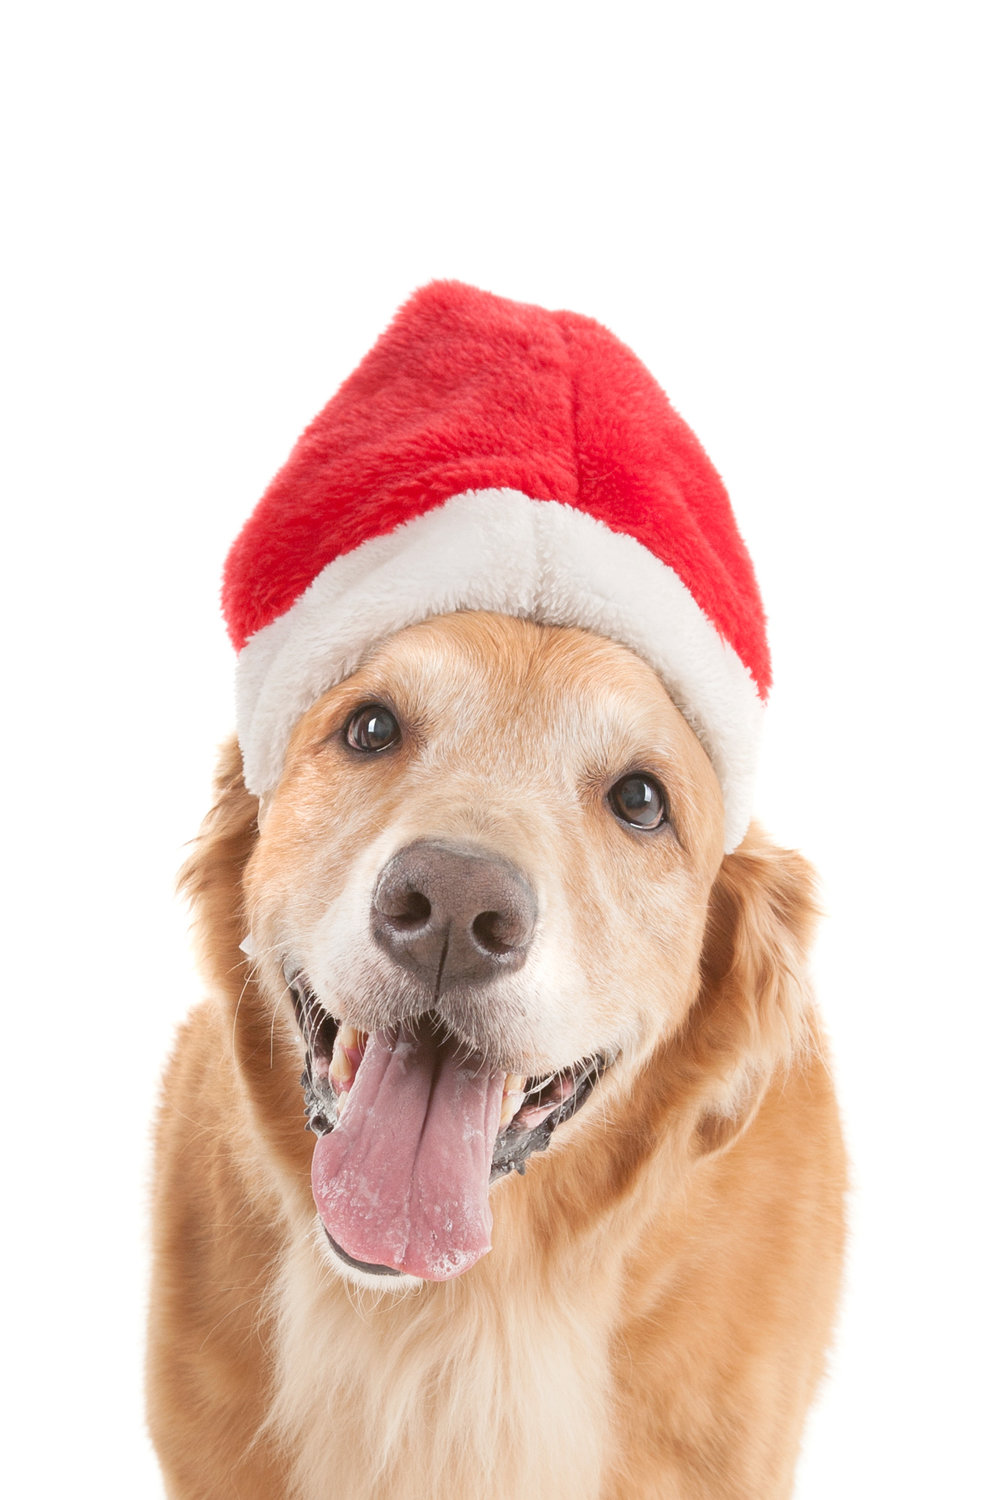 Golden+Retriever+with+Santa+hat.jpg